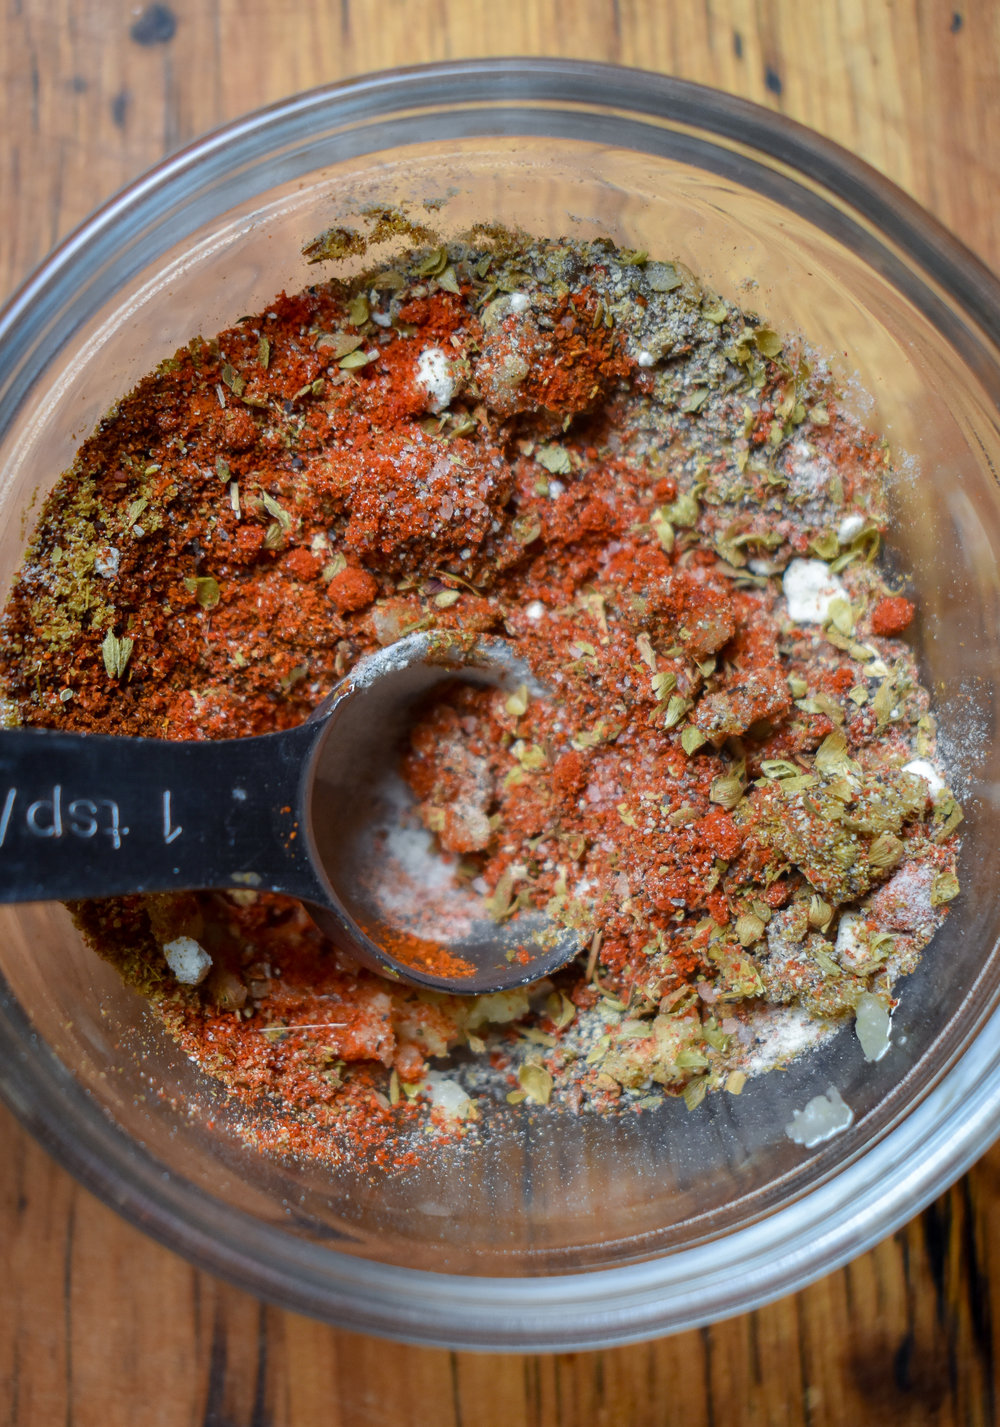 2. While the rice cooks, stir together your cajun spice blend in a small bowl.